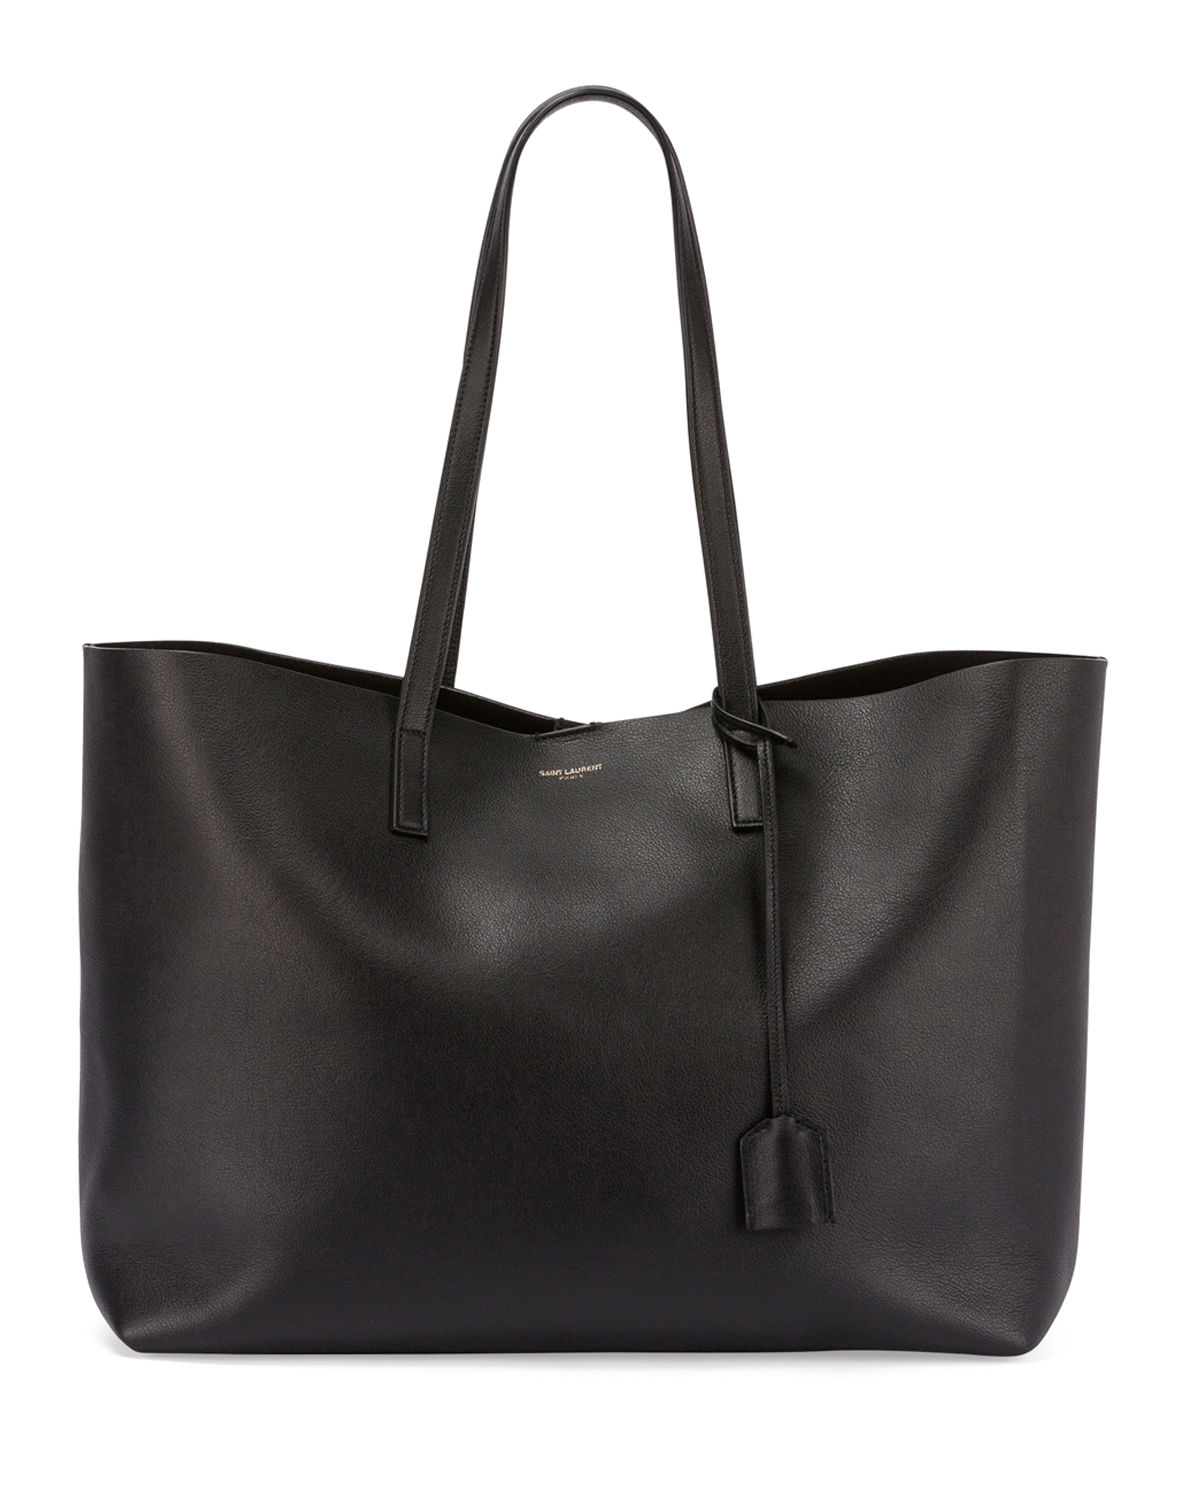 saint laurent designer bag shopper